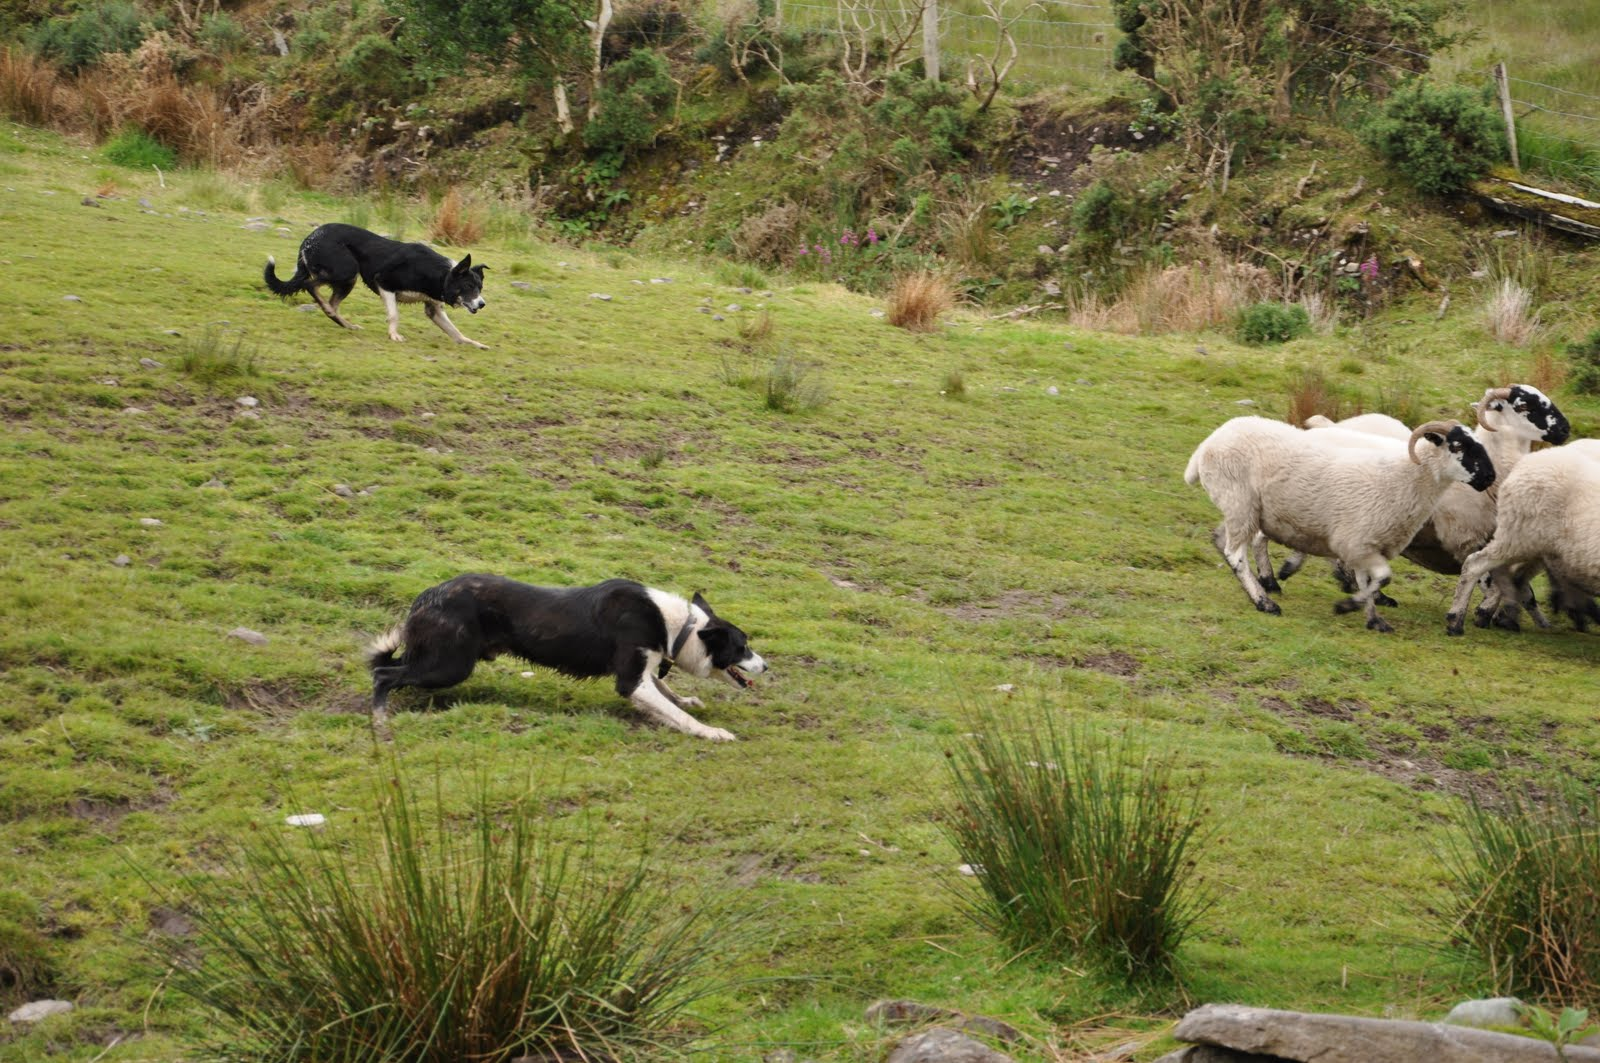 next  the shepherd had one of the dogs move the sheep from side to side